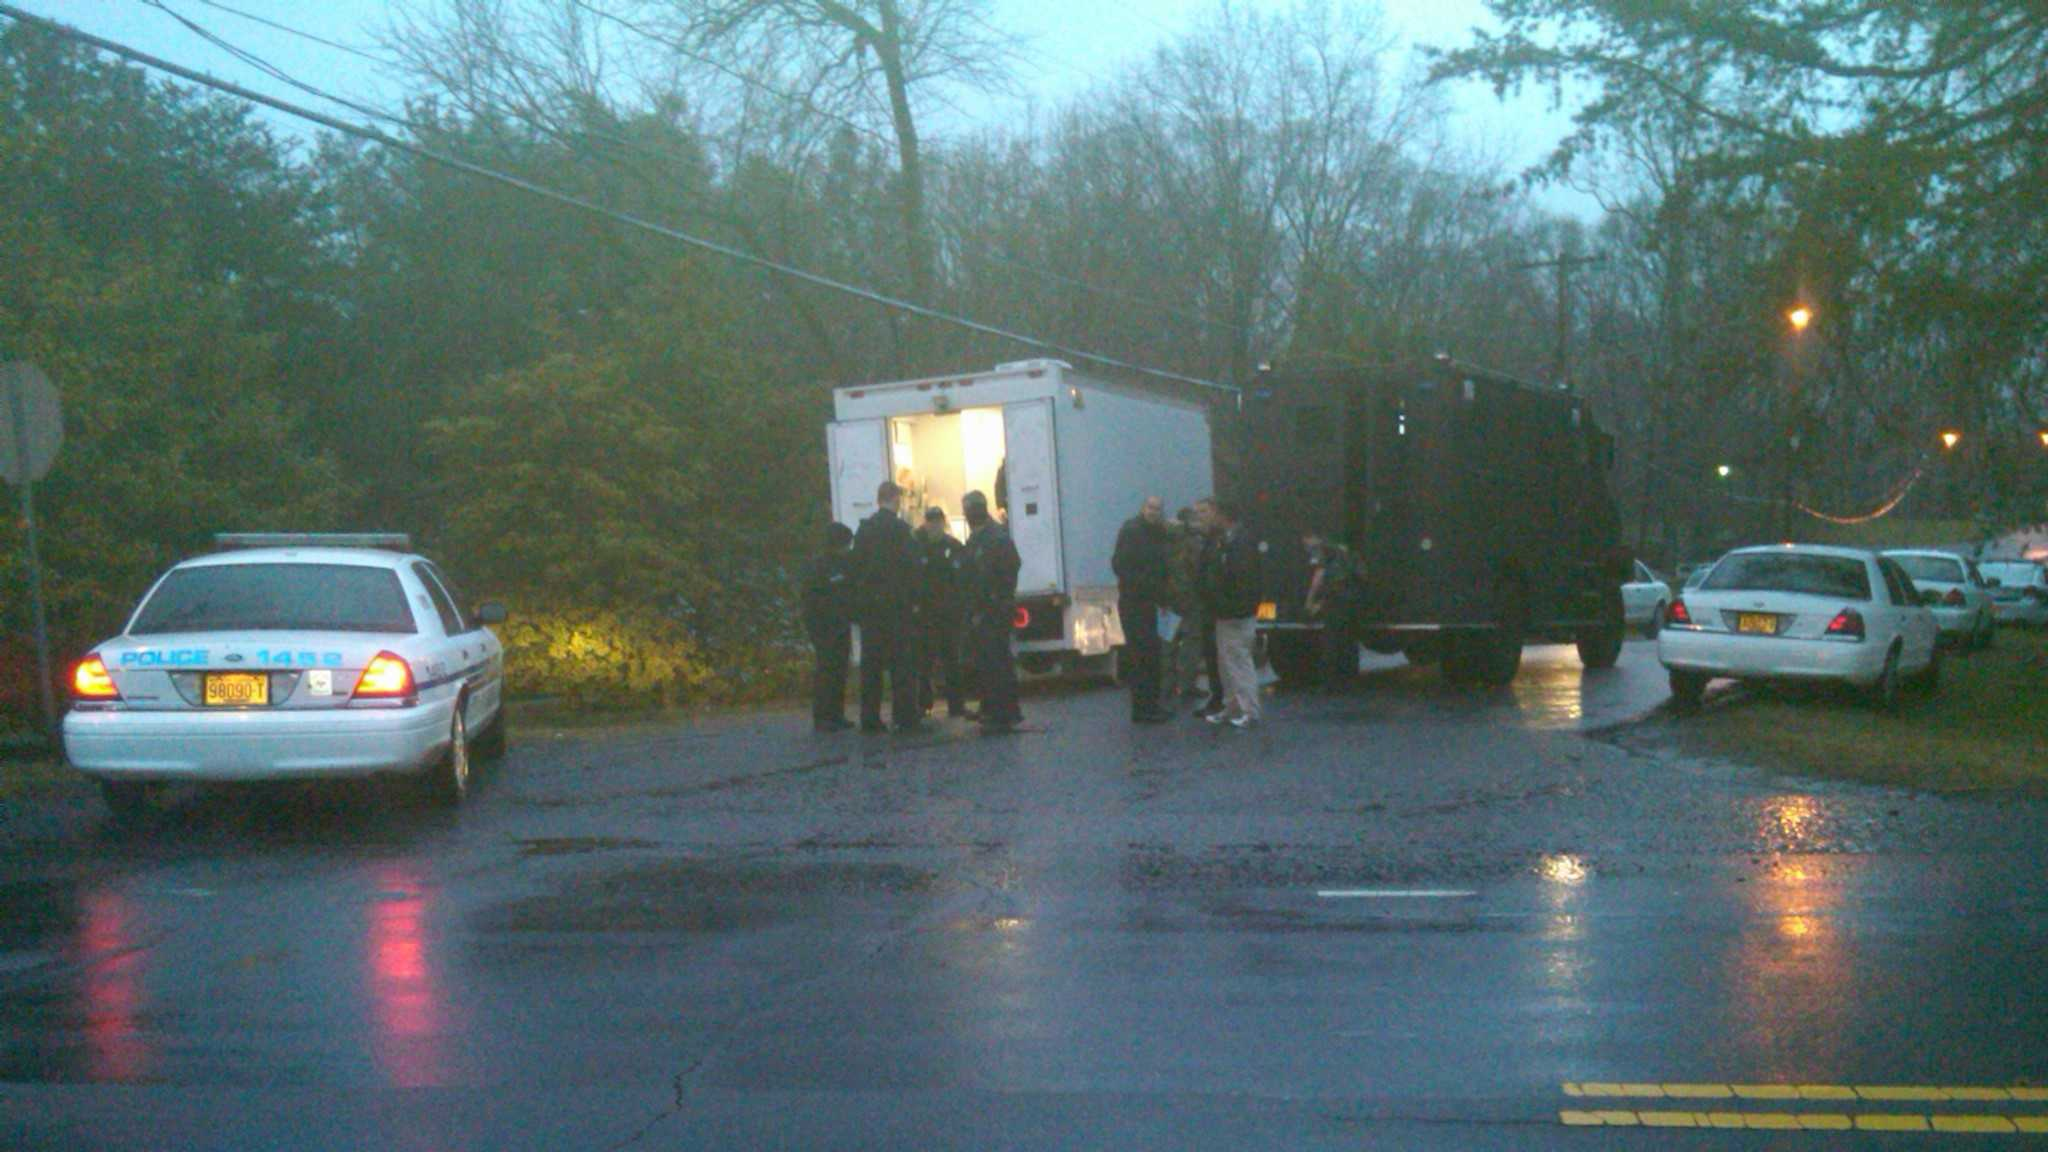 Winston-Salem police responded to a report of a gunshot inside a residence at 1105 Don Avenue.